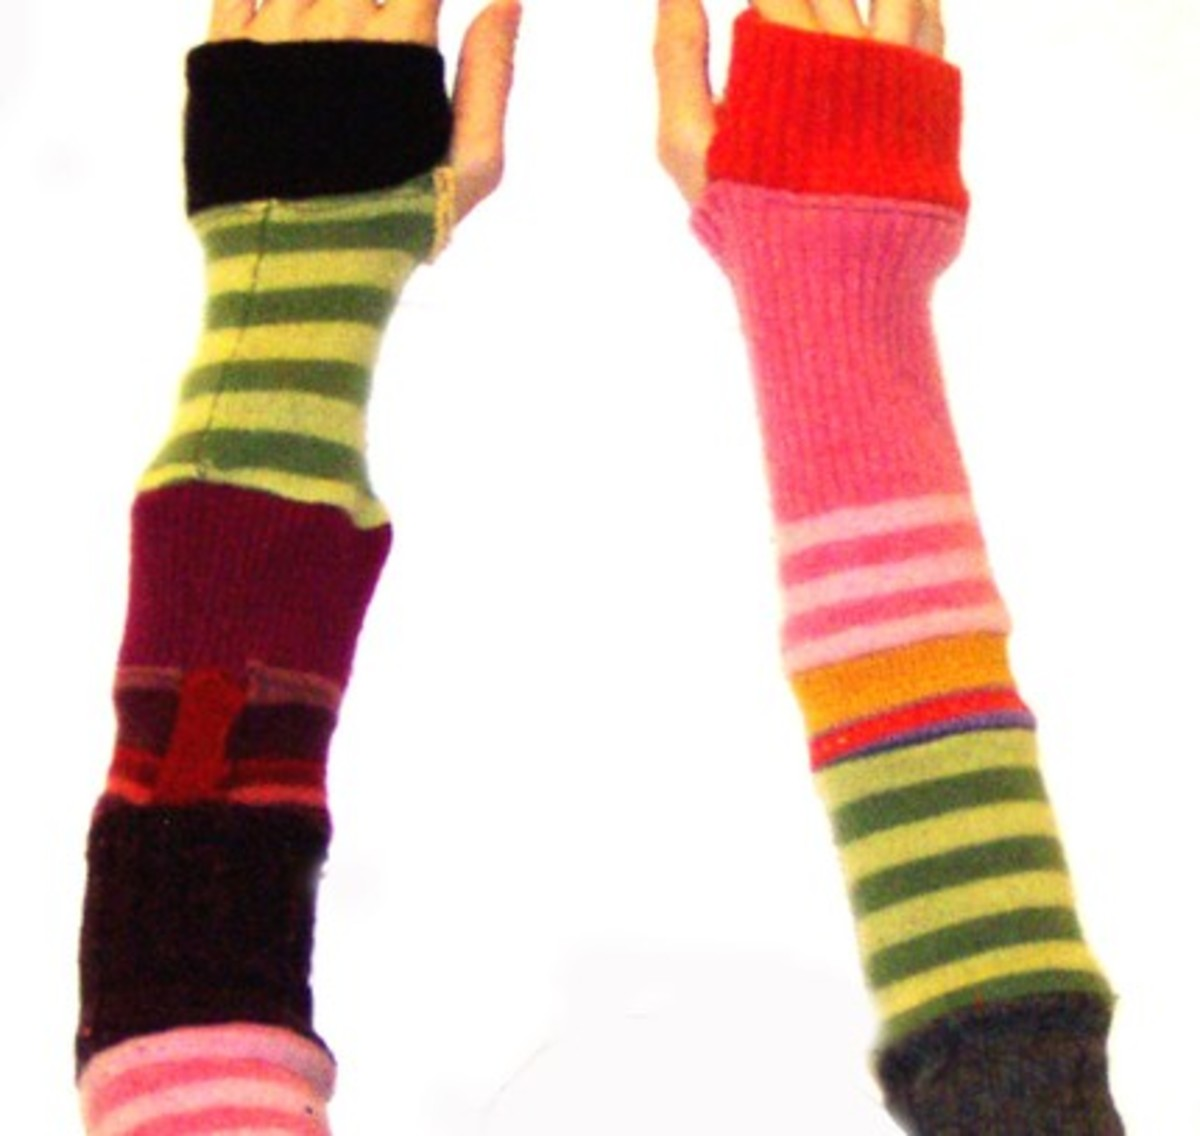 A creative use of color and texture from a  gifted crafter photo from www.stylehive.com/tag/arm_warmers